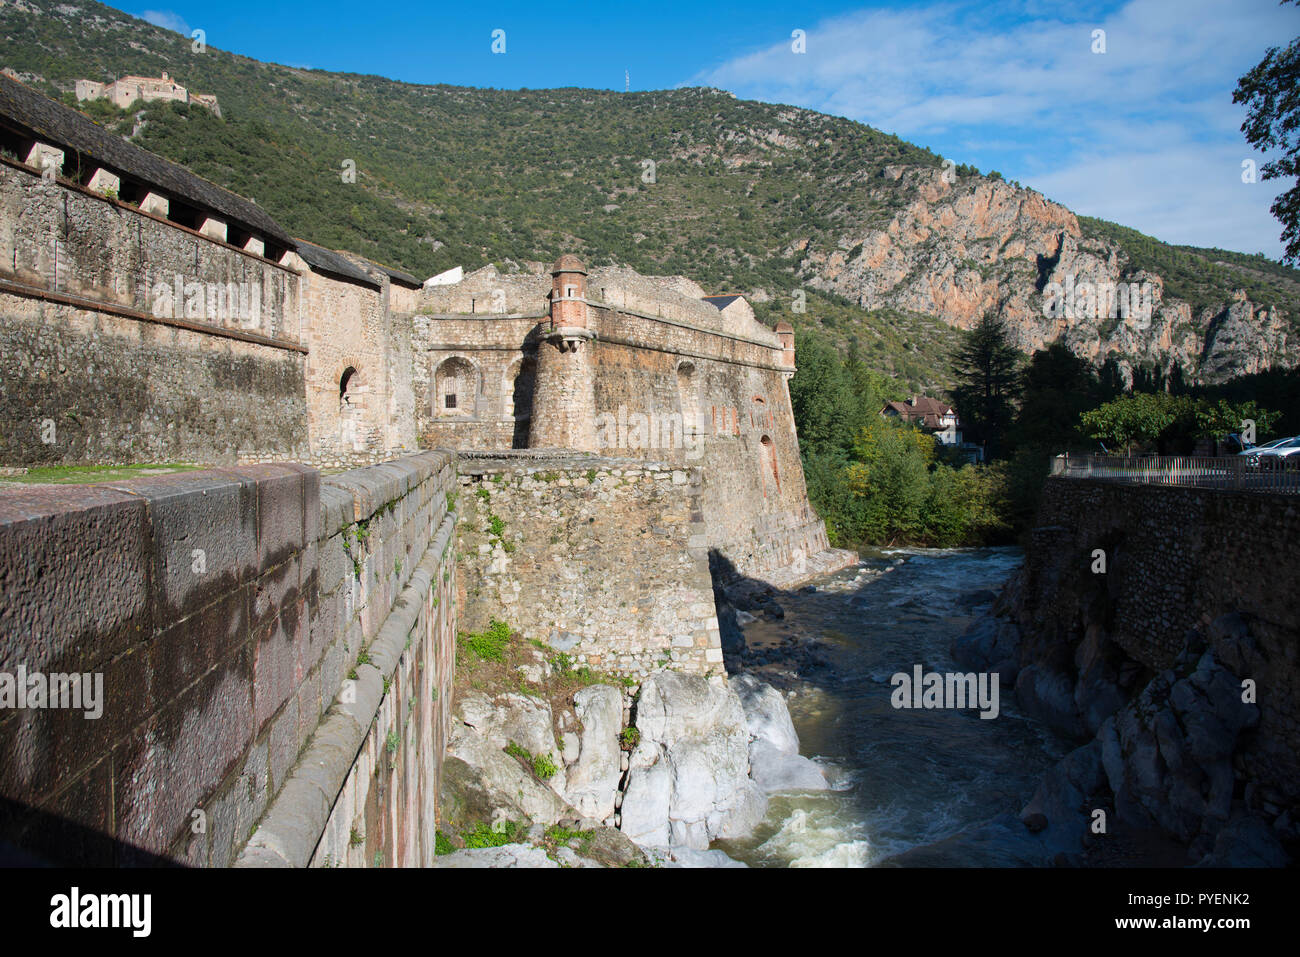 Medieval city Villefranche de Conflent in the Pyrenees mountains in France Stock Photo